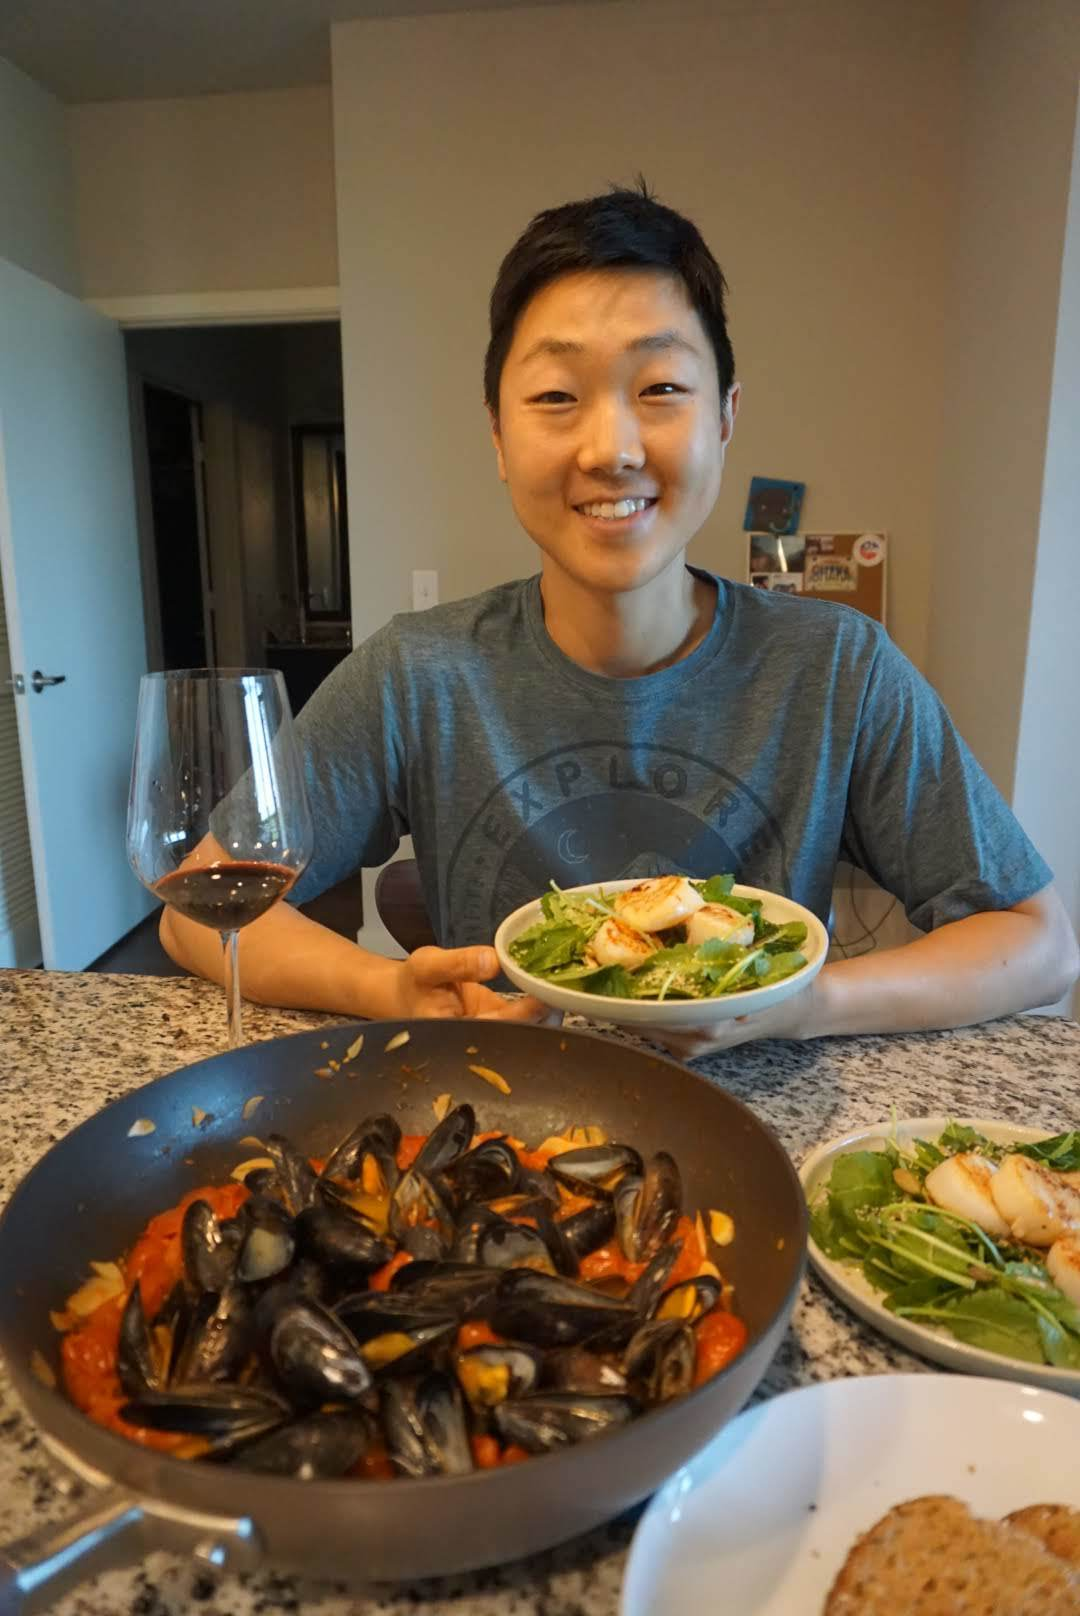 Seared scallops salad and mussels in tomato sauce